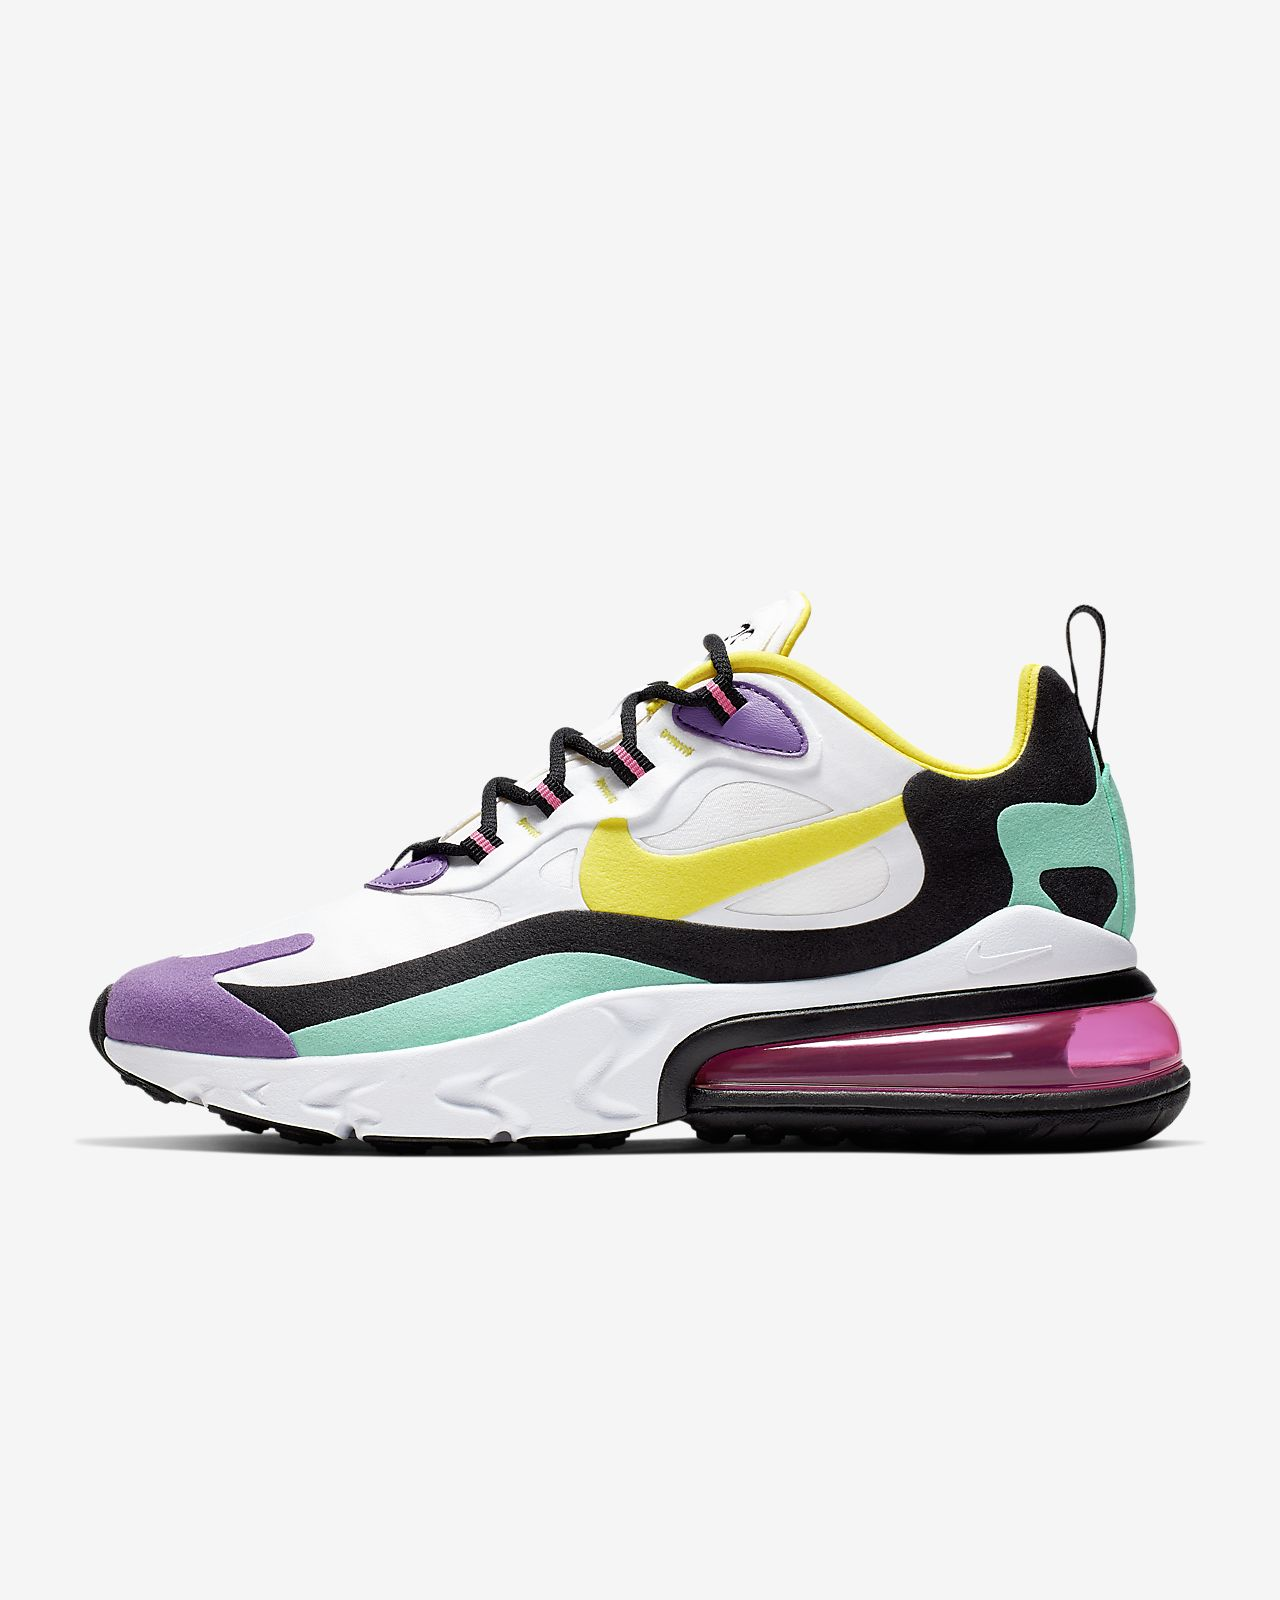 Nike Air Max 270 React (Geometric Abstract) Women's Shoe